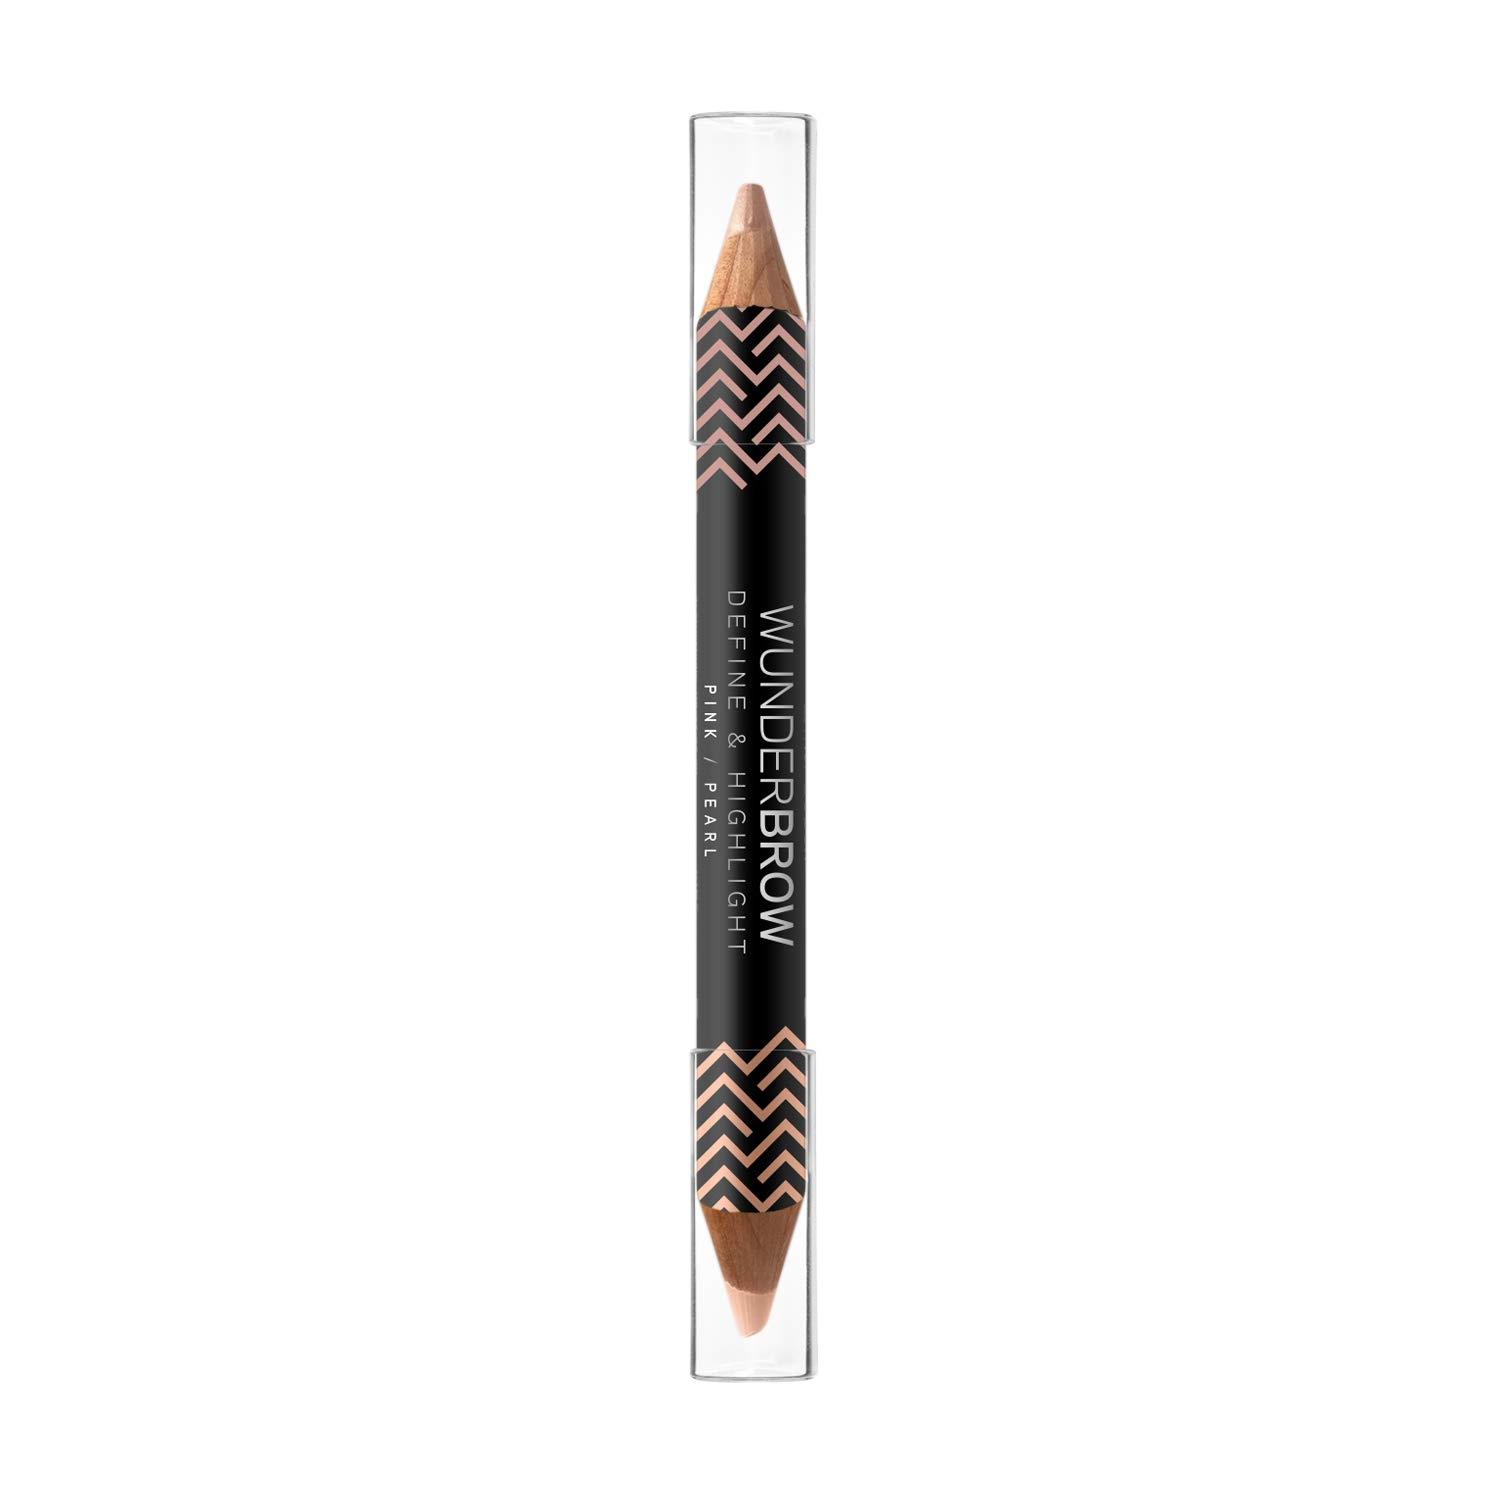 WUNDER2 Wunderbrow Define and Highlight- A Long Lasting and Waterproof Dual Ended Pencil that Highlights and Illuminates the Brow Bones, Pink-Pearl